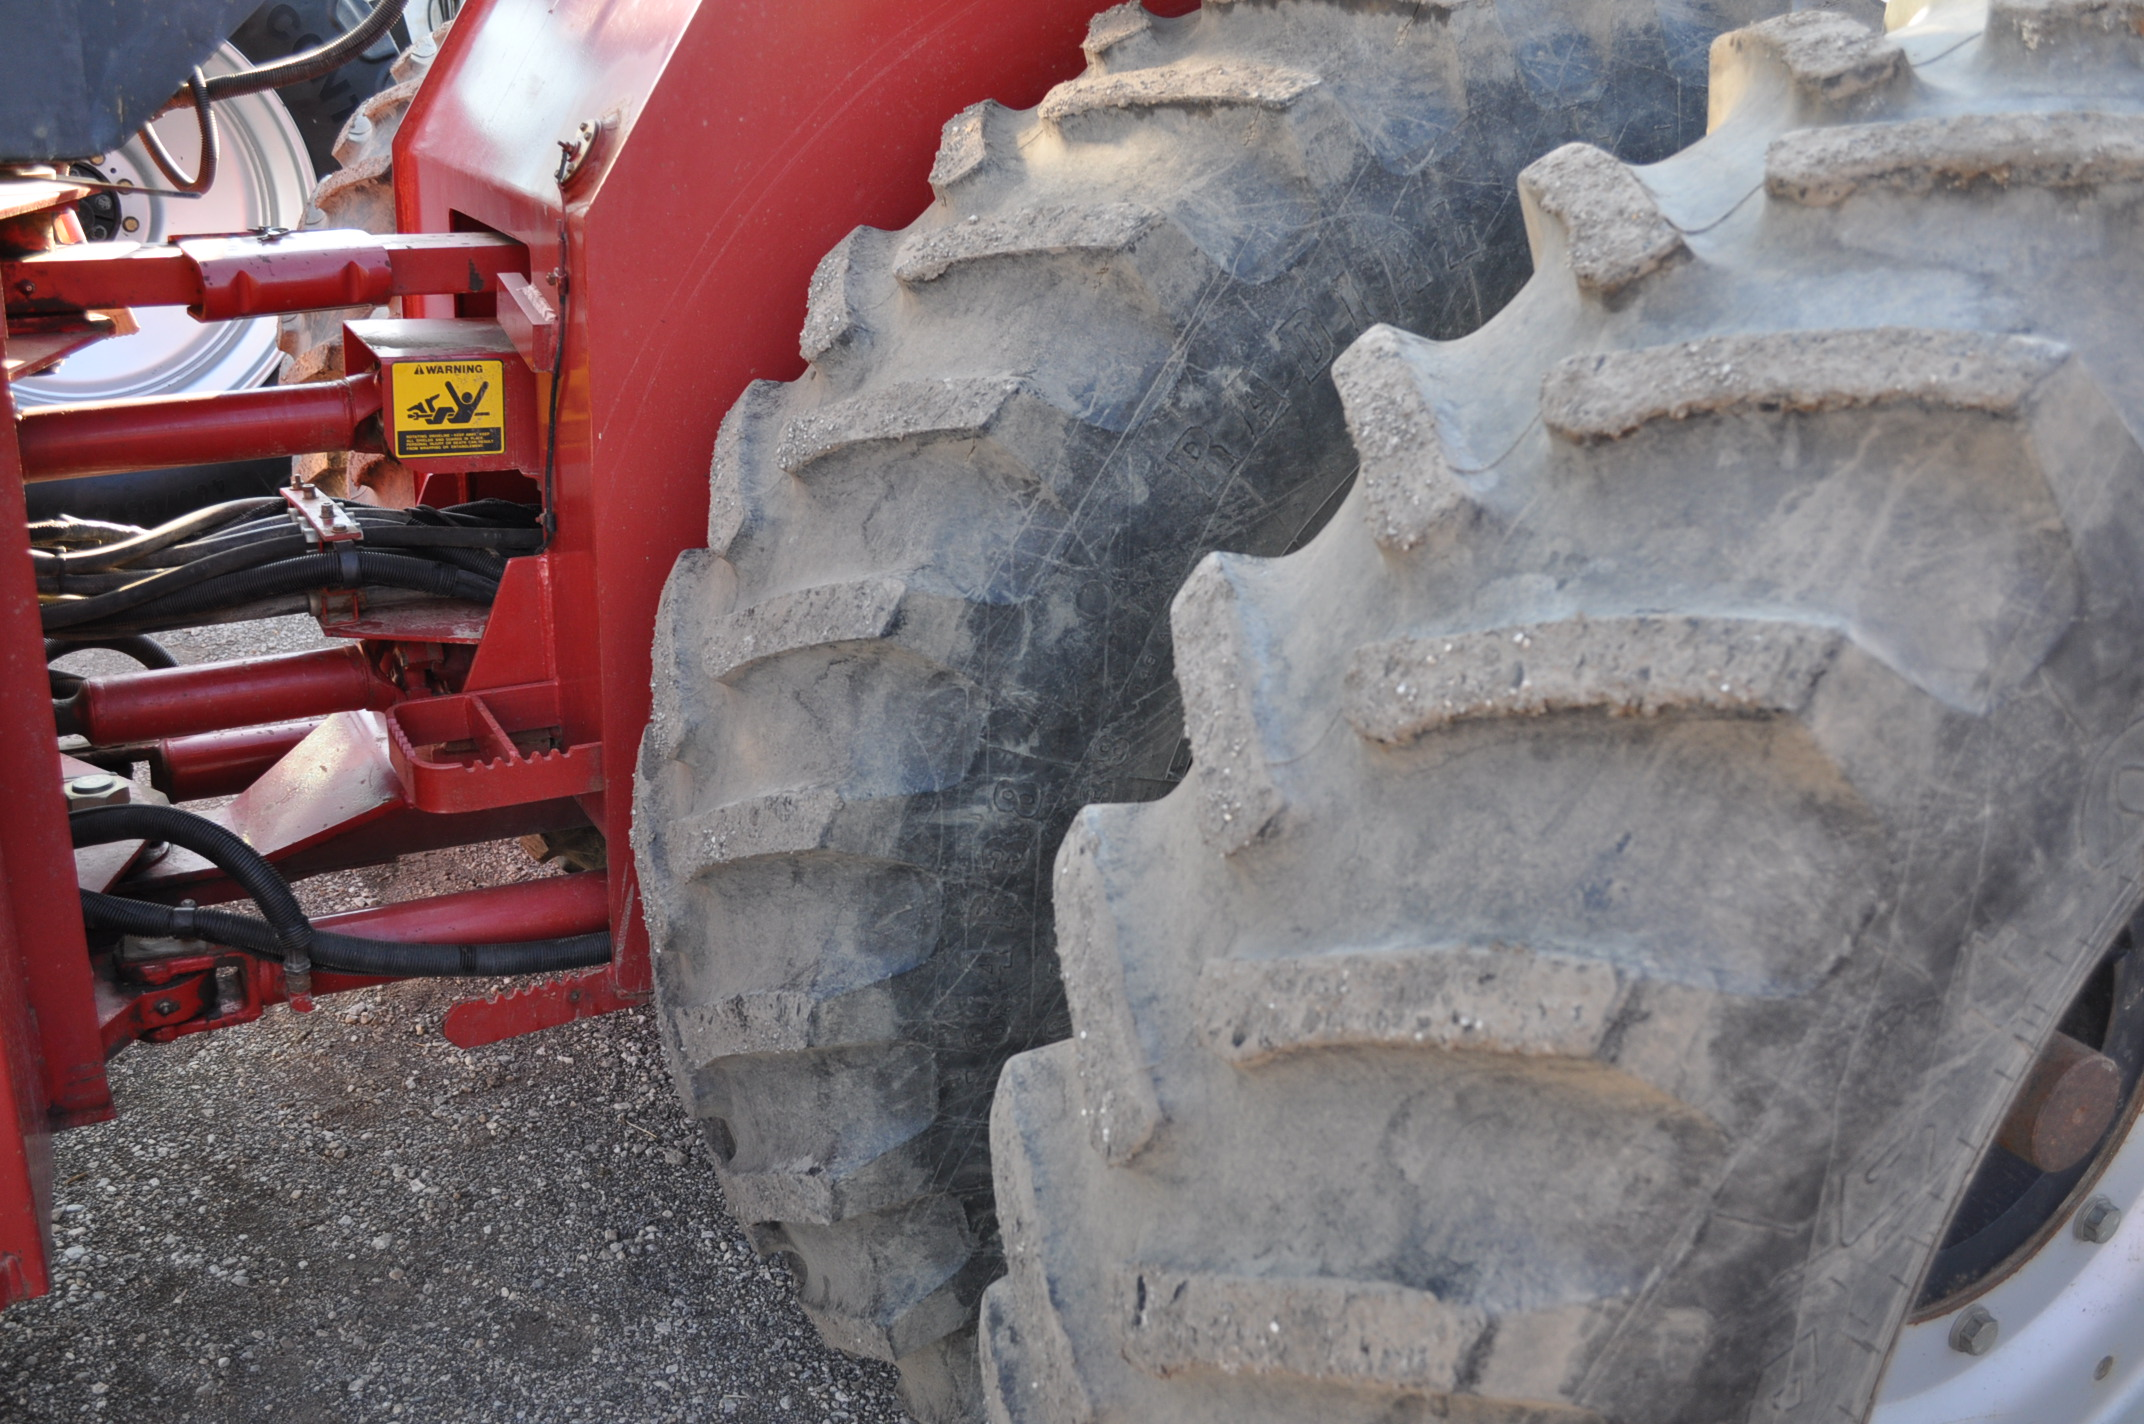 Case IH 9230 4WD tractor, 18.4-38 duals, power shift, skip shift, 4 hyd remotes, 3pt, quick hitch, - Image 6 of 23